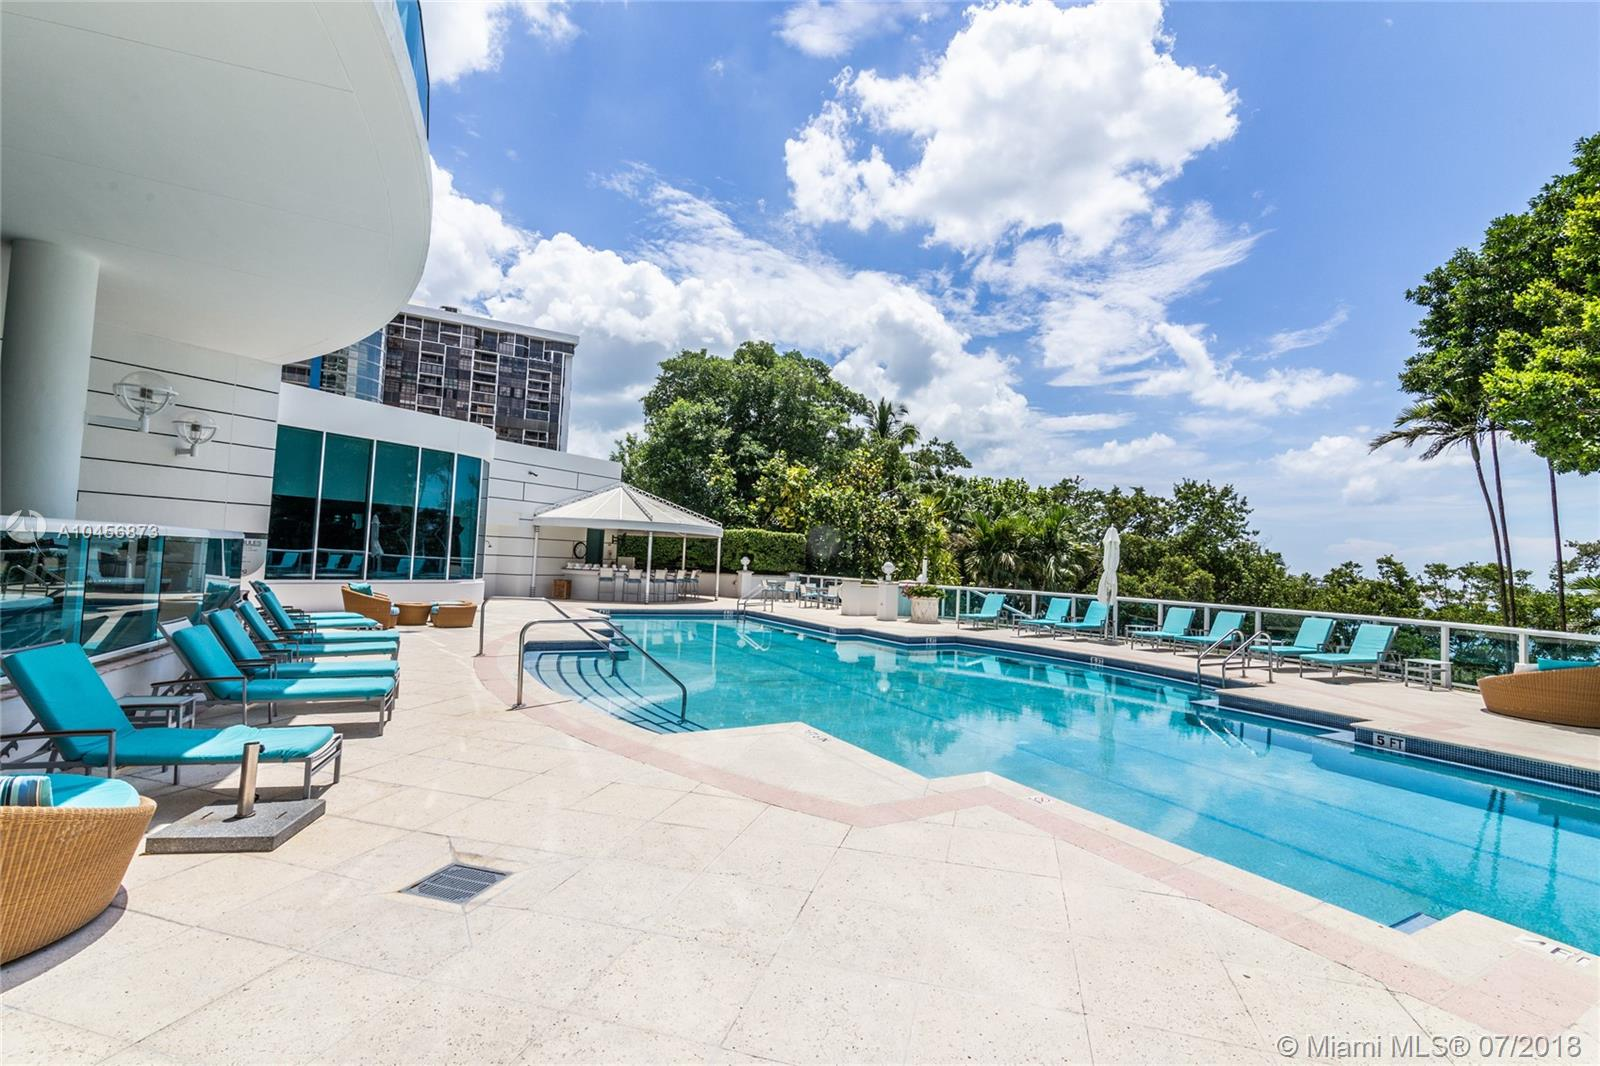 2127 Brickell Avenue, Miami, FL 33129, Bristol Tower Condominium #1702, Brickell, Miami A10456873 image #34